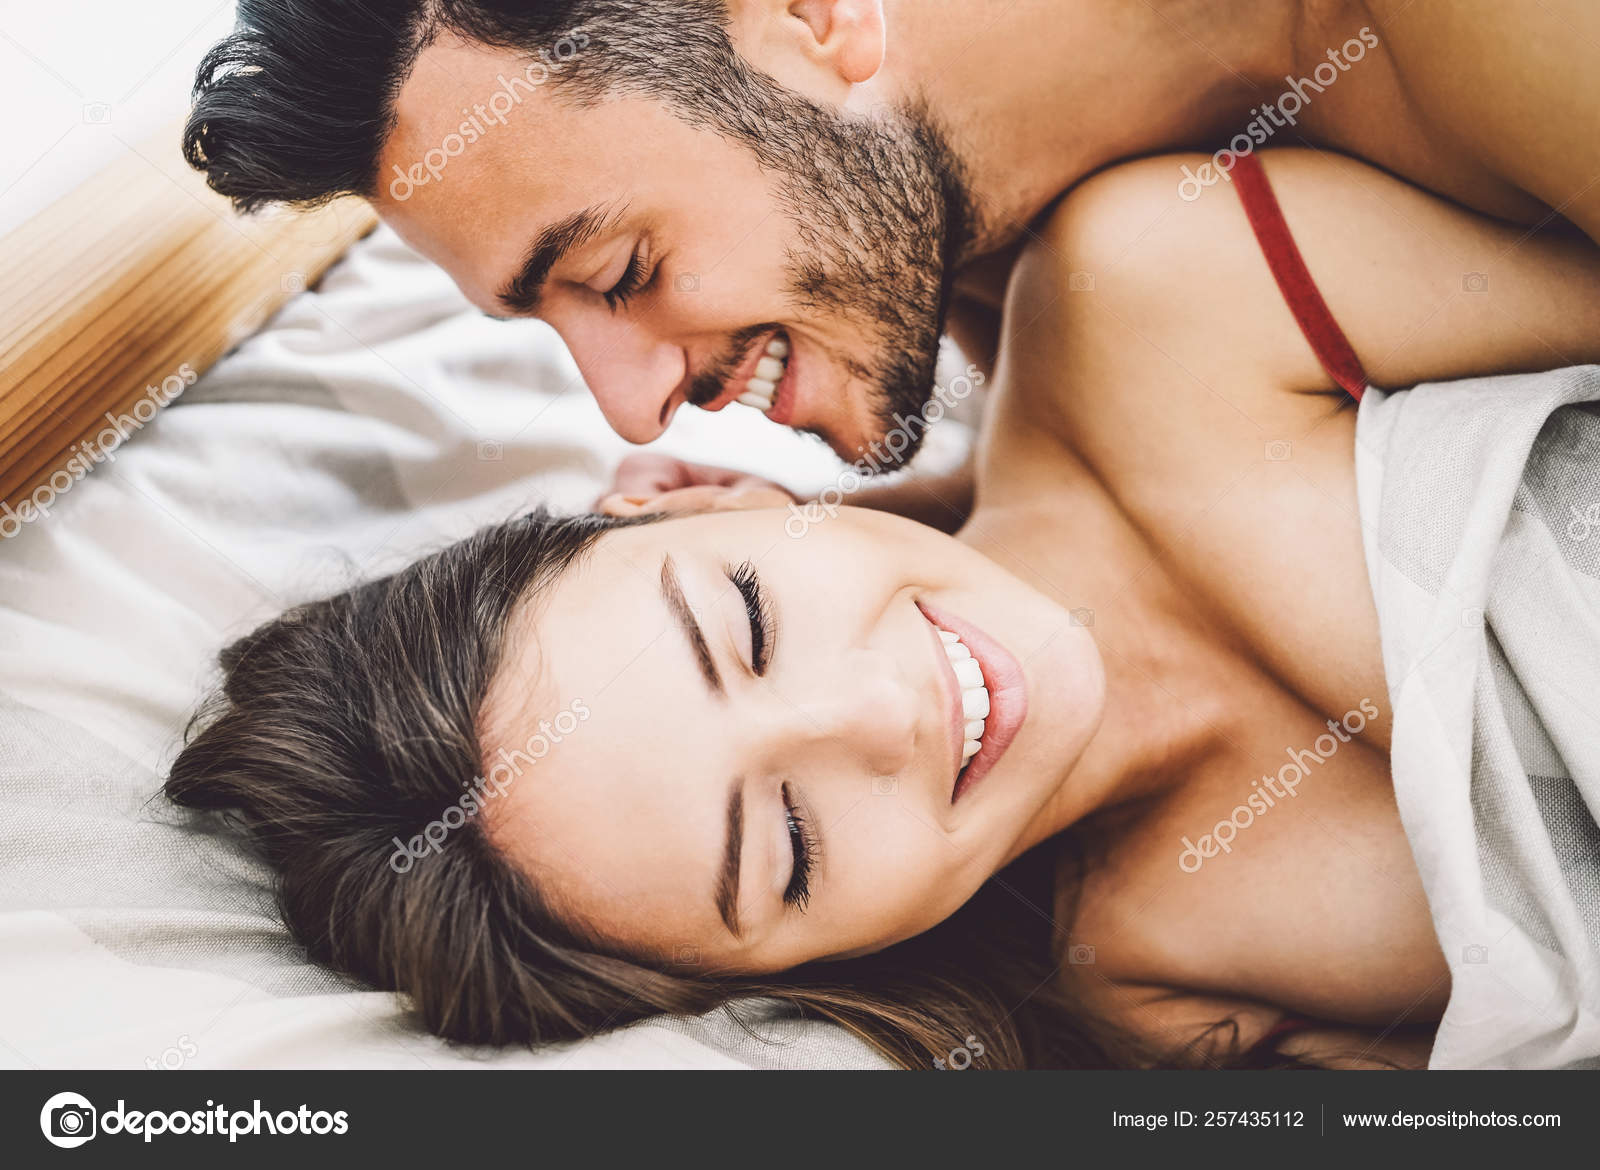 Images of couples having sex